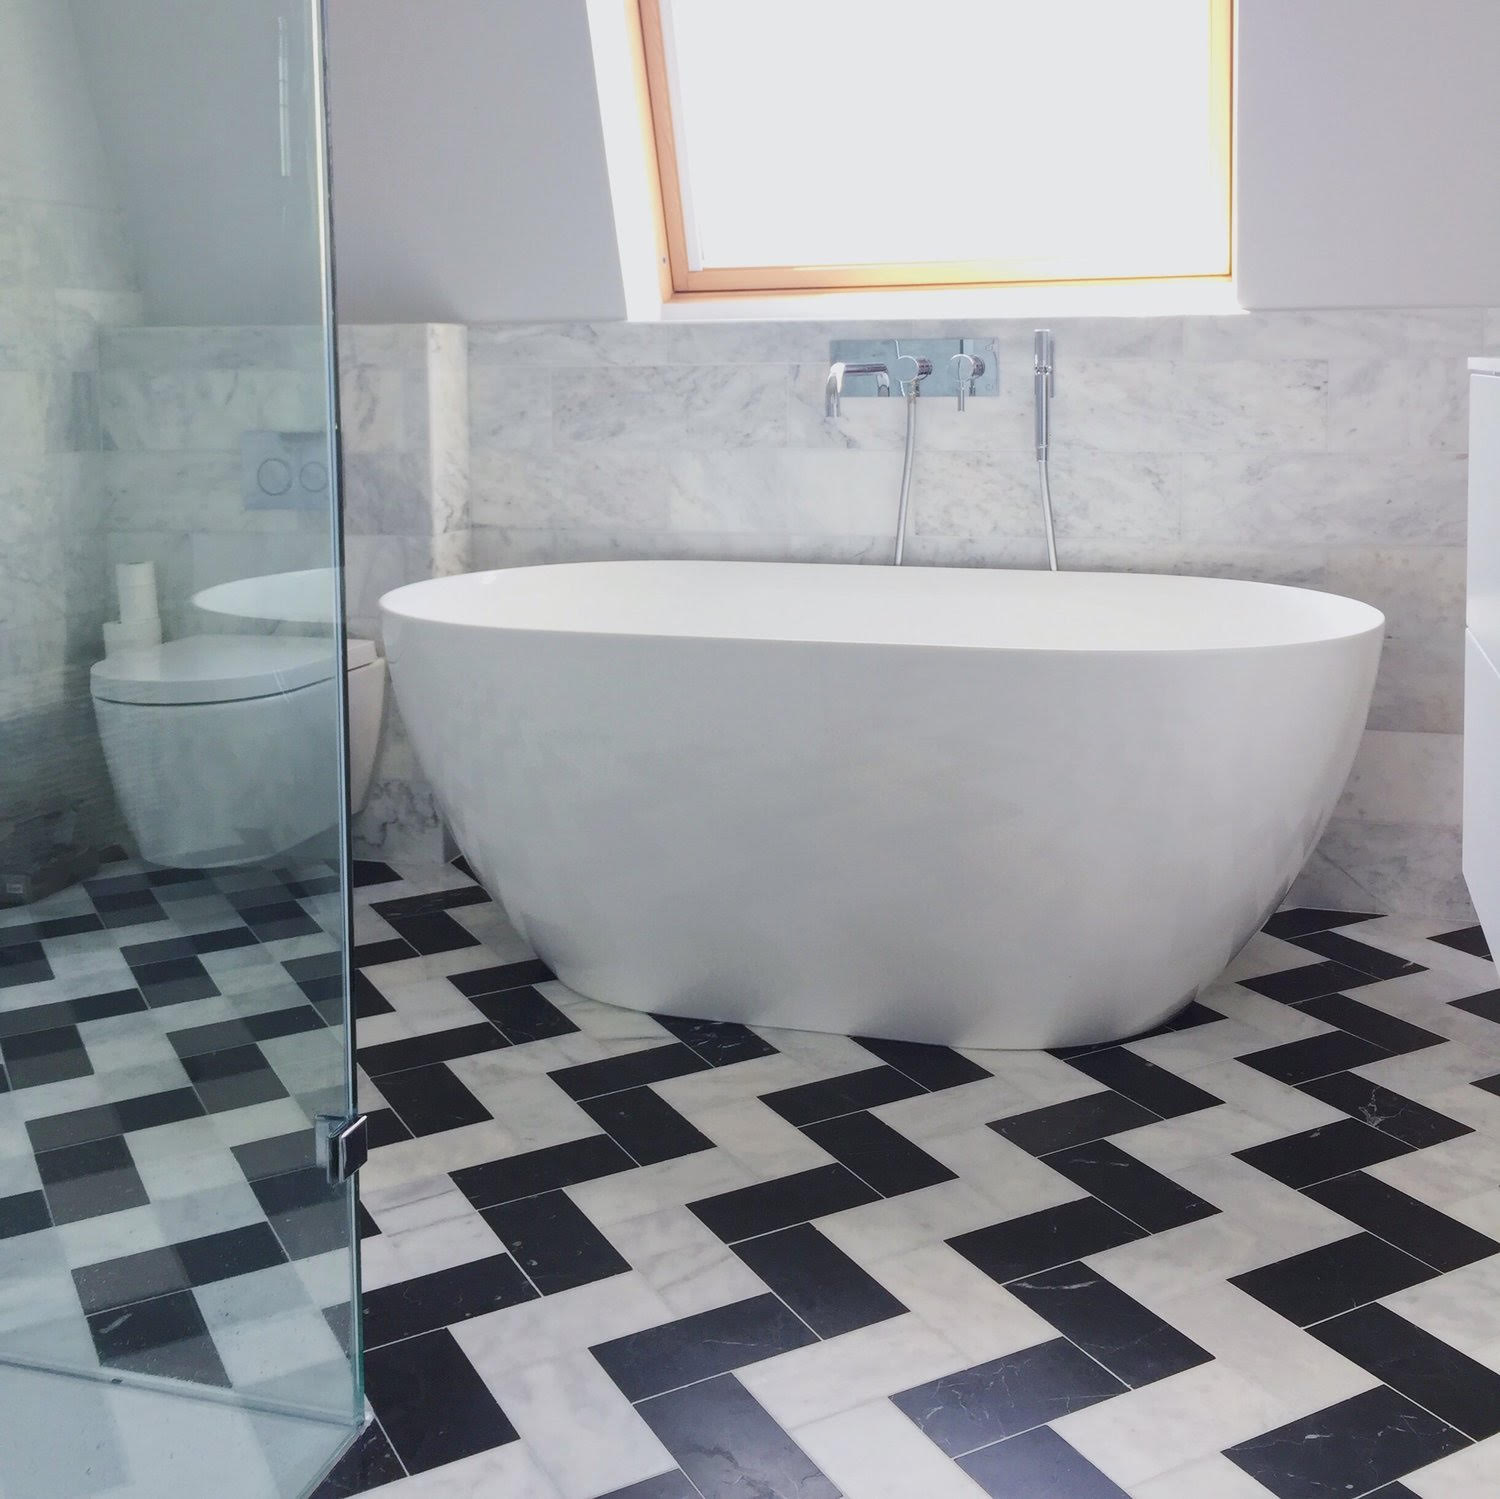 Bathroom Design - South-West London | 5 Ways to Improve Property Value